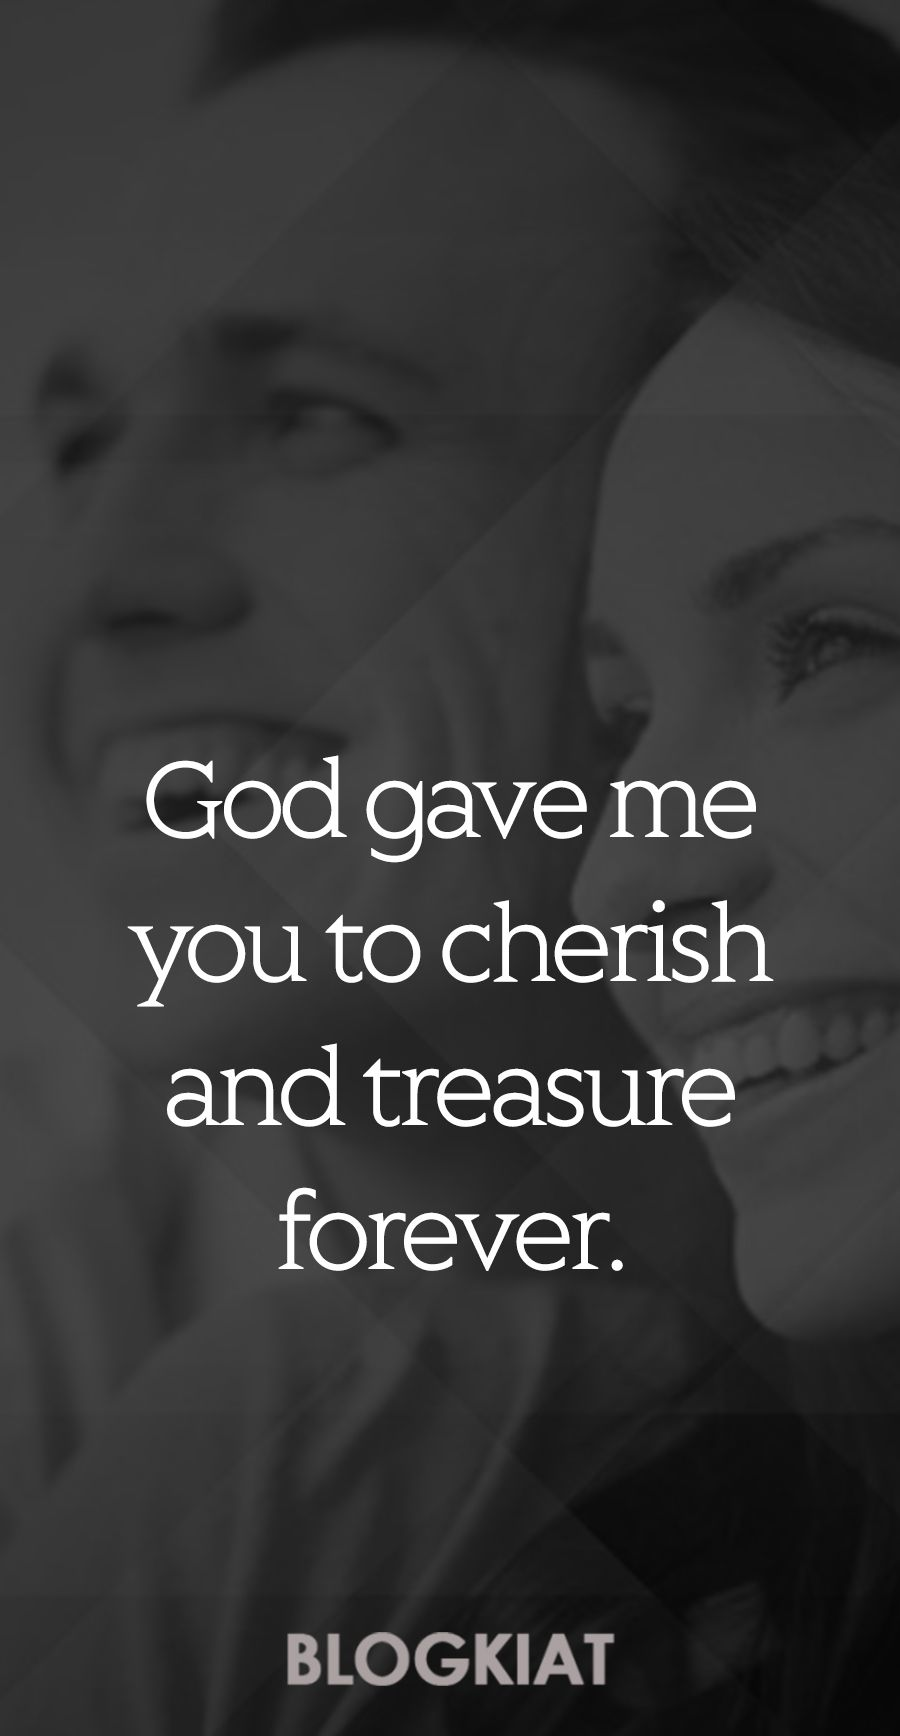 Image of: Her 50 Sweet Cute Romantic Love Quotes For Her cutelovequotes lovequotes romanticlovequotes sweetlovequotes relationshipquotes relationships Pinterest 50 Sweet Cute Romantic Love Quotes For Her Quotes Love